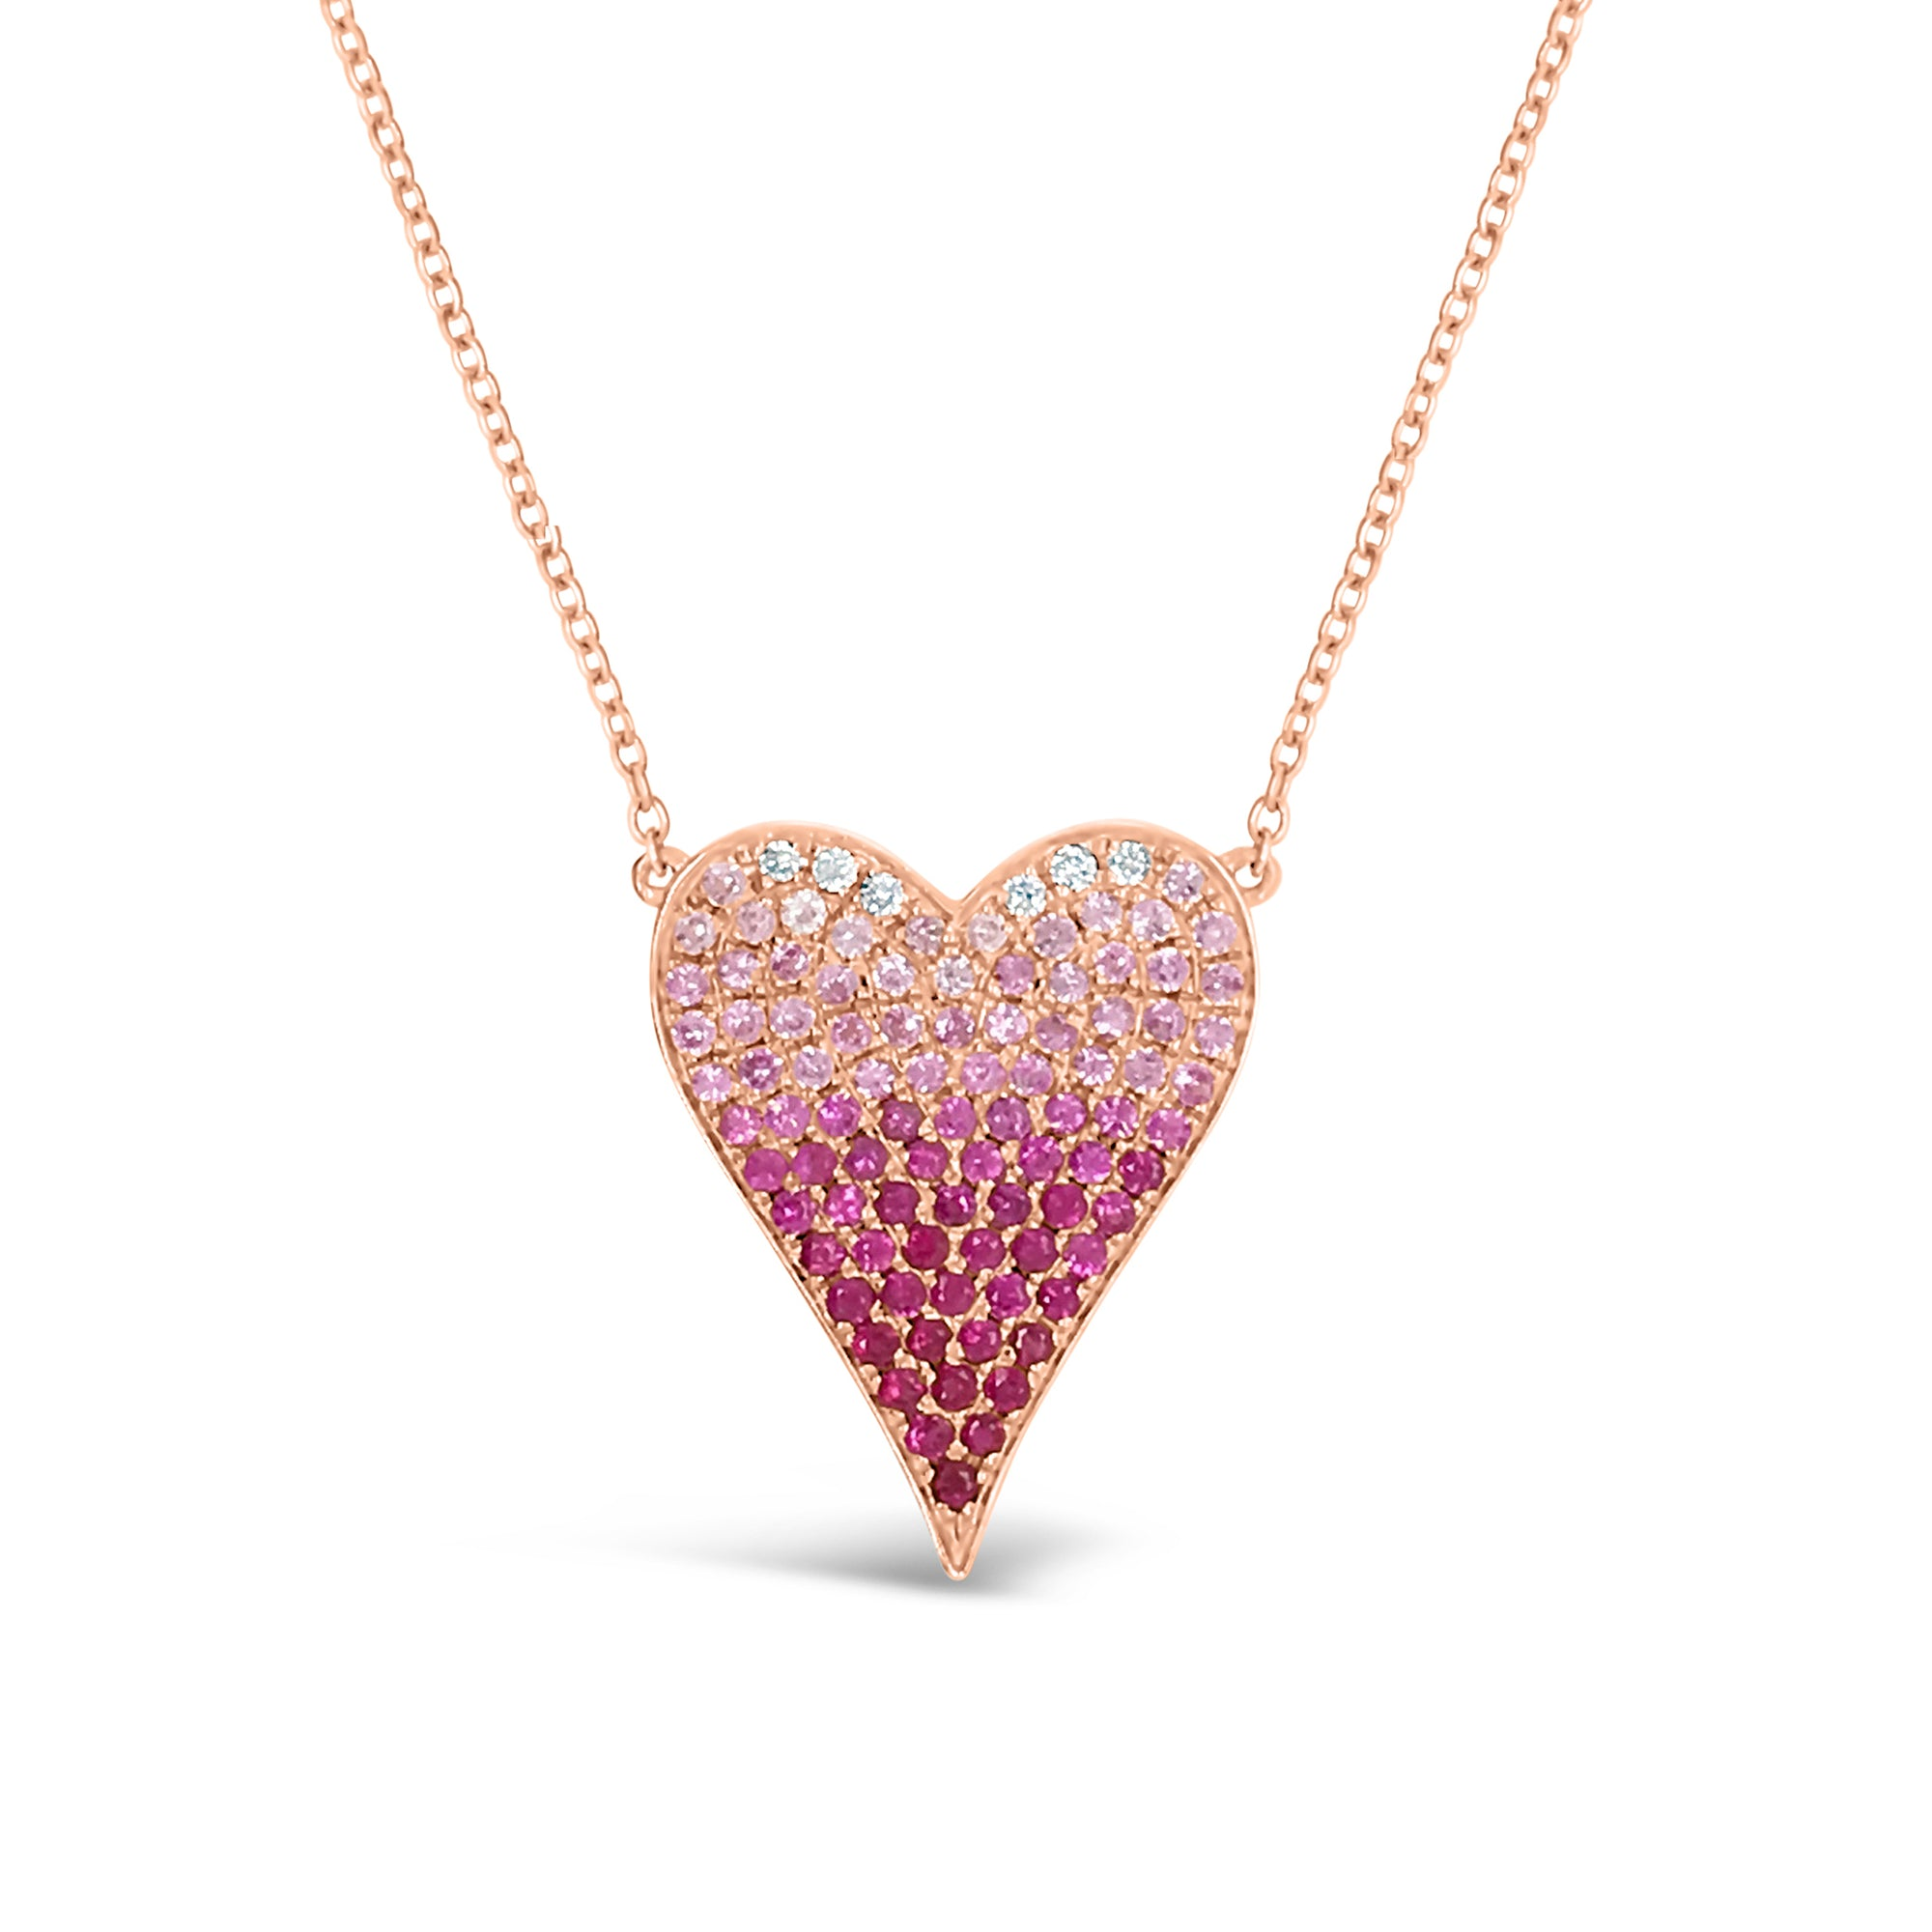 Gradient Gemstone & Diamond Heart Pendant Necklace